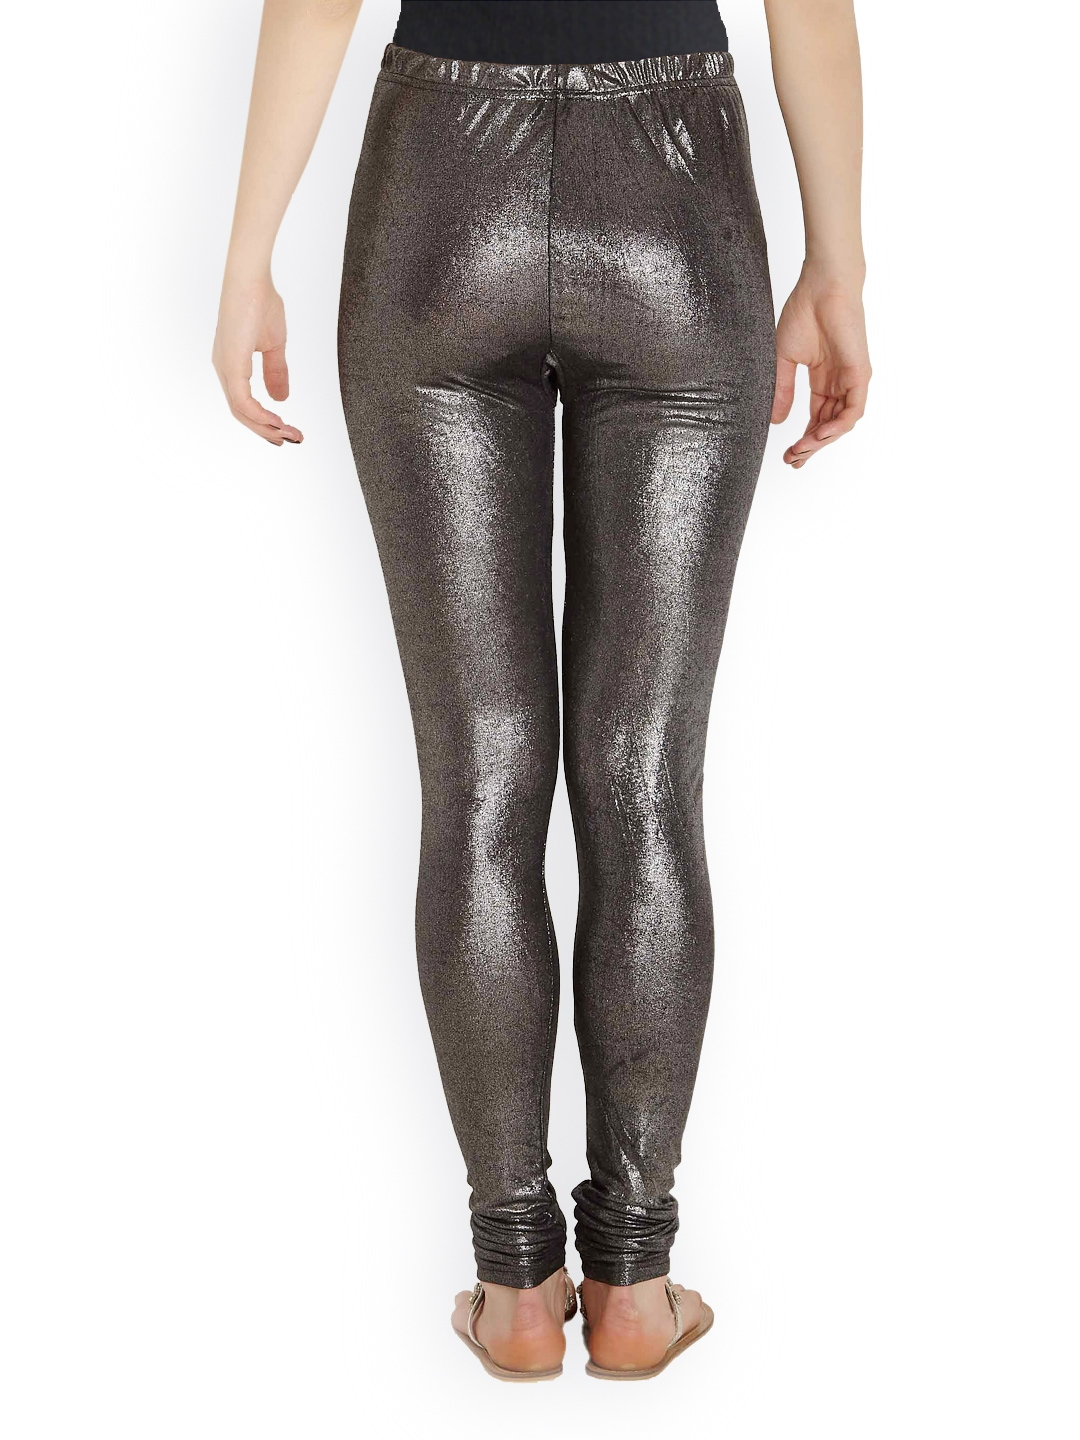 You searched for: silver leggings! Etsy is the home to thousands of handmade, vintage, and one-of-a-kind products and gifts related to your search. No matter what you're looking for or where you are in the world, our global marketplace of sellers can help you find unique and affordable options. Let's get started!